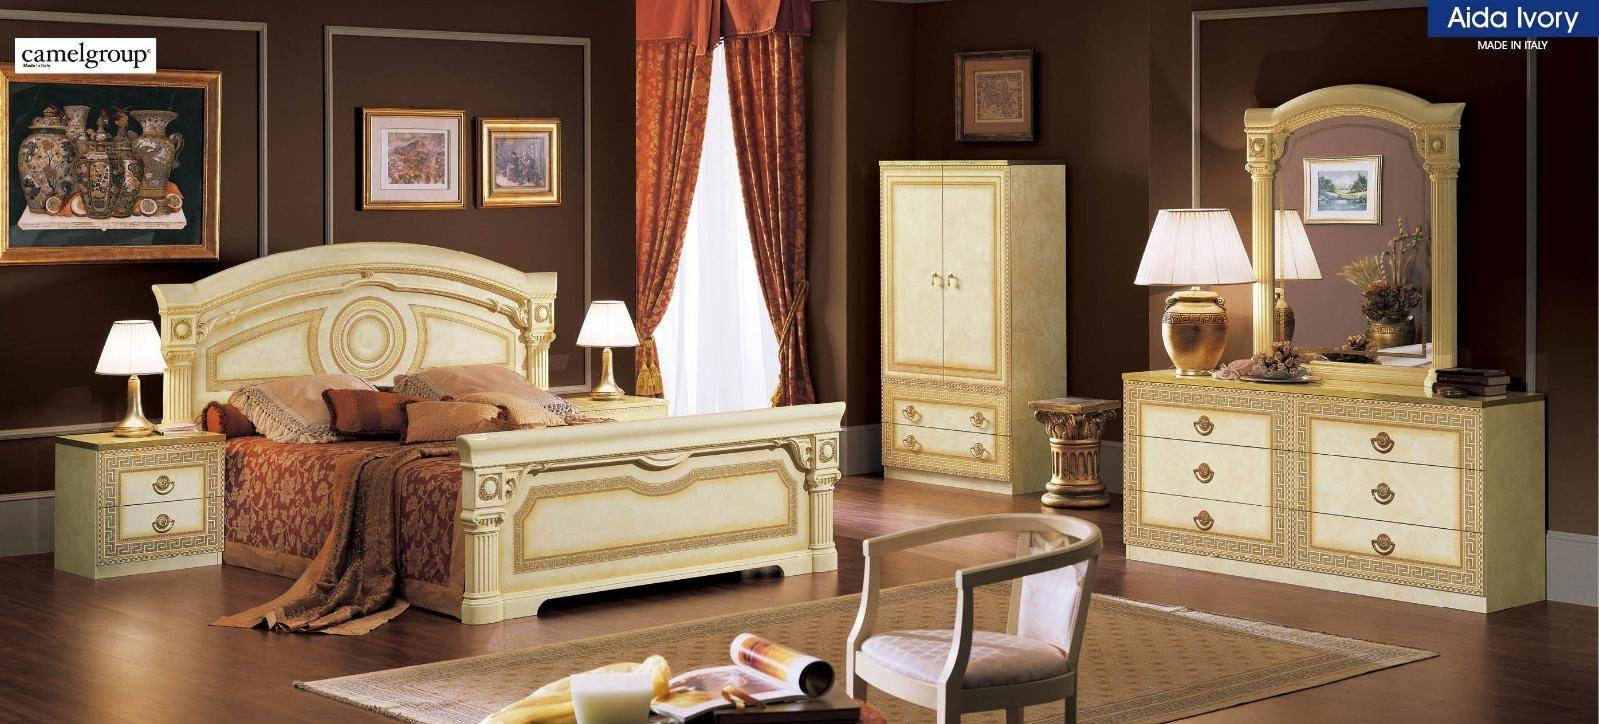 Used King Size Bedroom Set Beautiful Esf Aida Ivory Gold Lacquer Finish Queen Bedroom Set 5ps